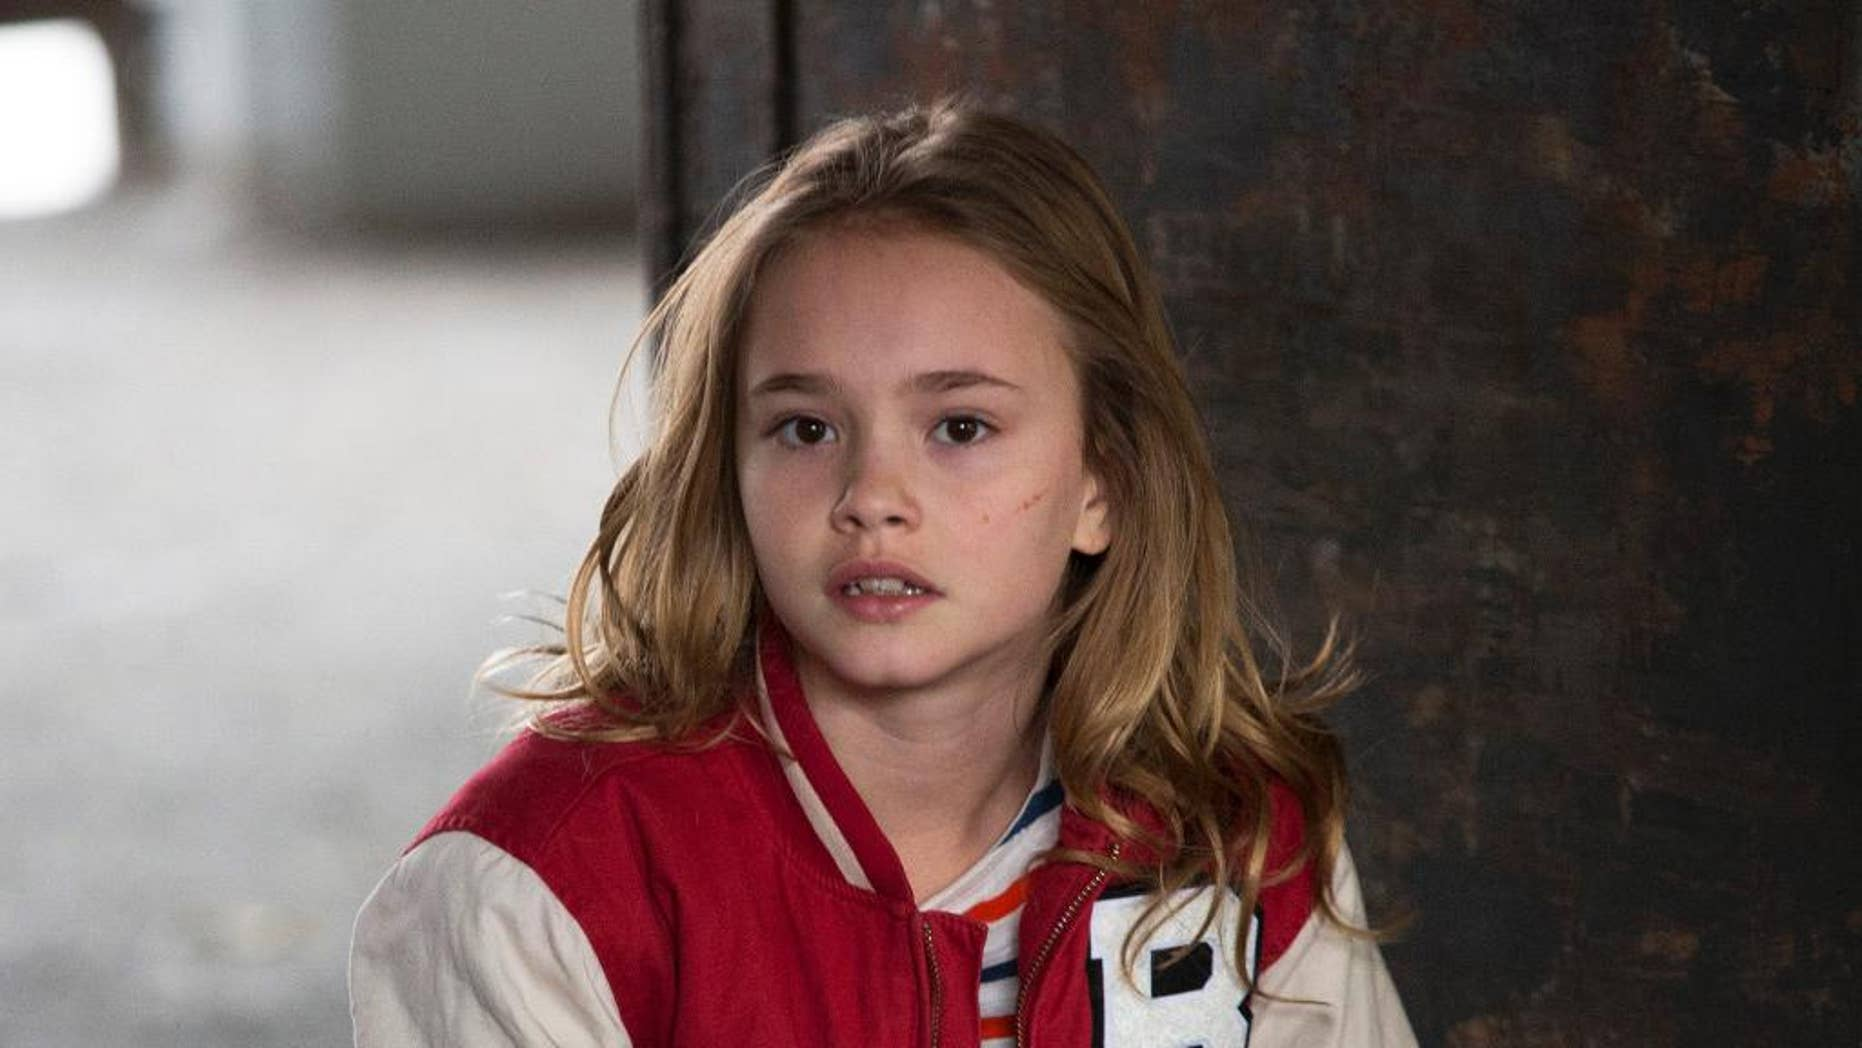 """Johnny Sequoyah as Bo, in the pilot of the new NBC television series, """"Believe."""" Alfonso Cuaron and J.J. Abrams (""""Lost,"""" the """"Star Trek"""" movies) are executive producers of """"Believe,"""" a drama about a child whose supernatural powers put her and the world at risk."""